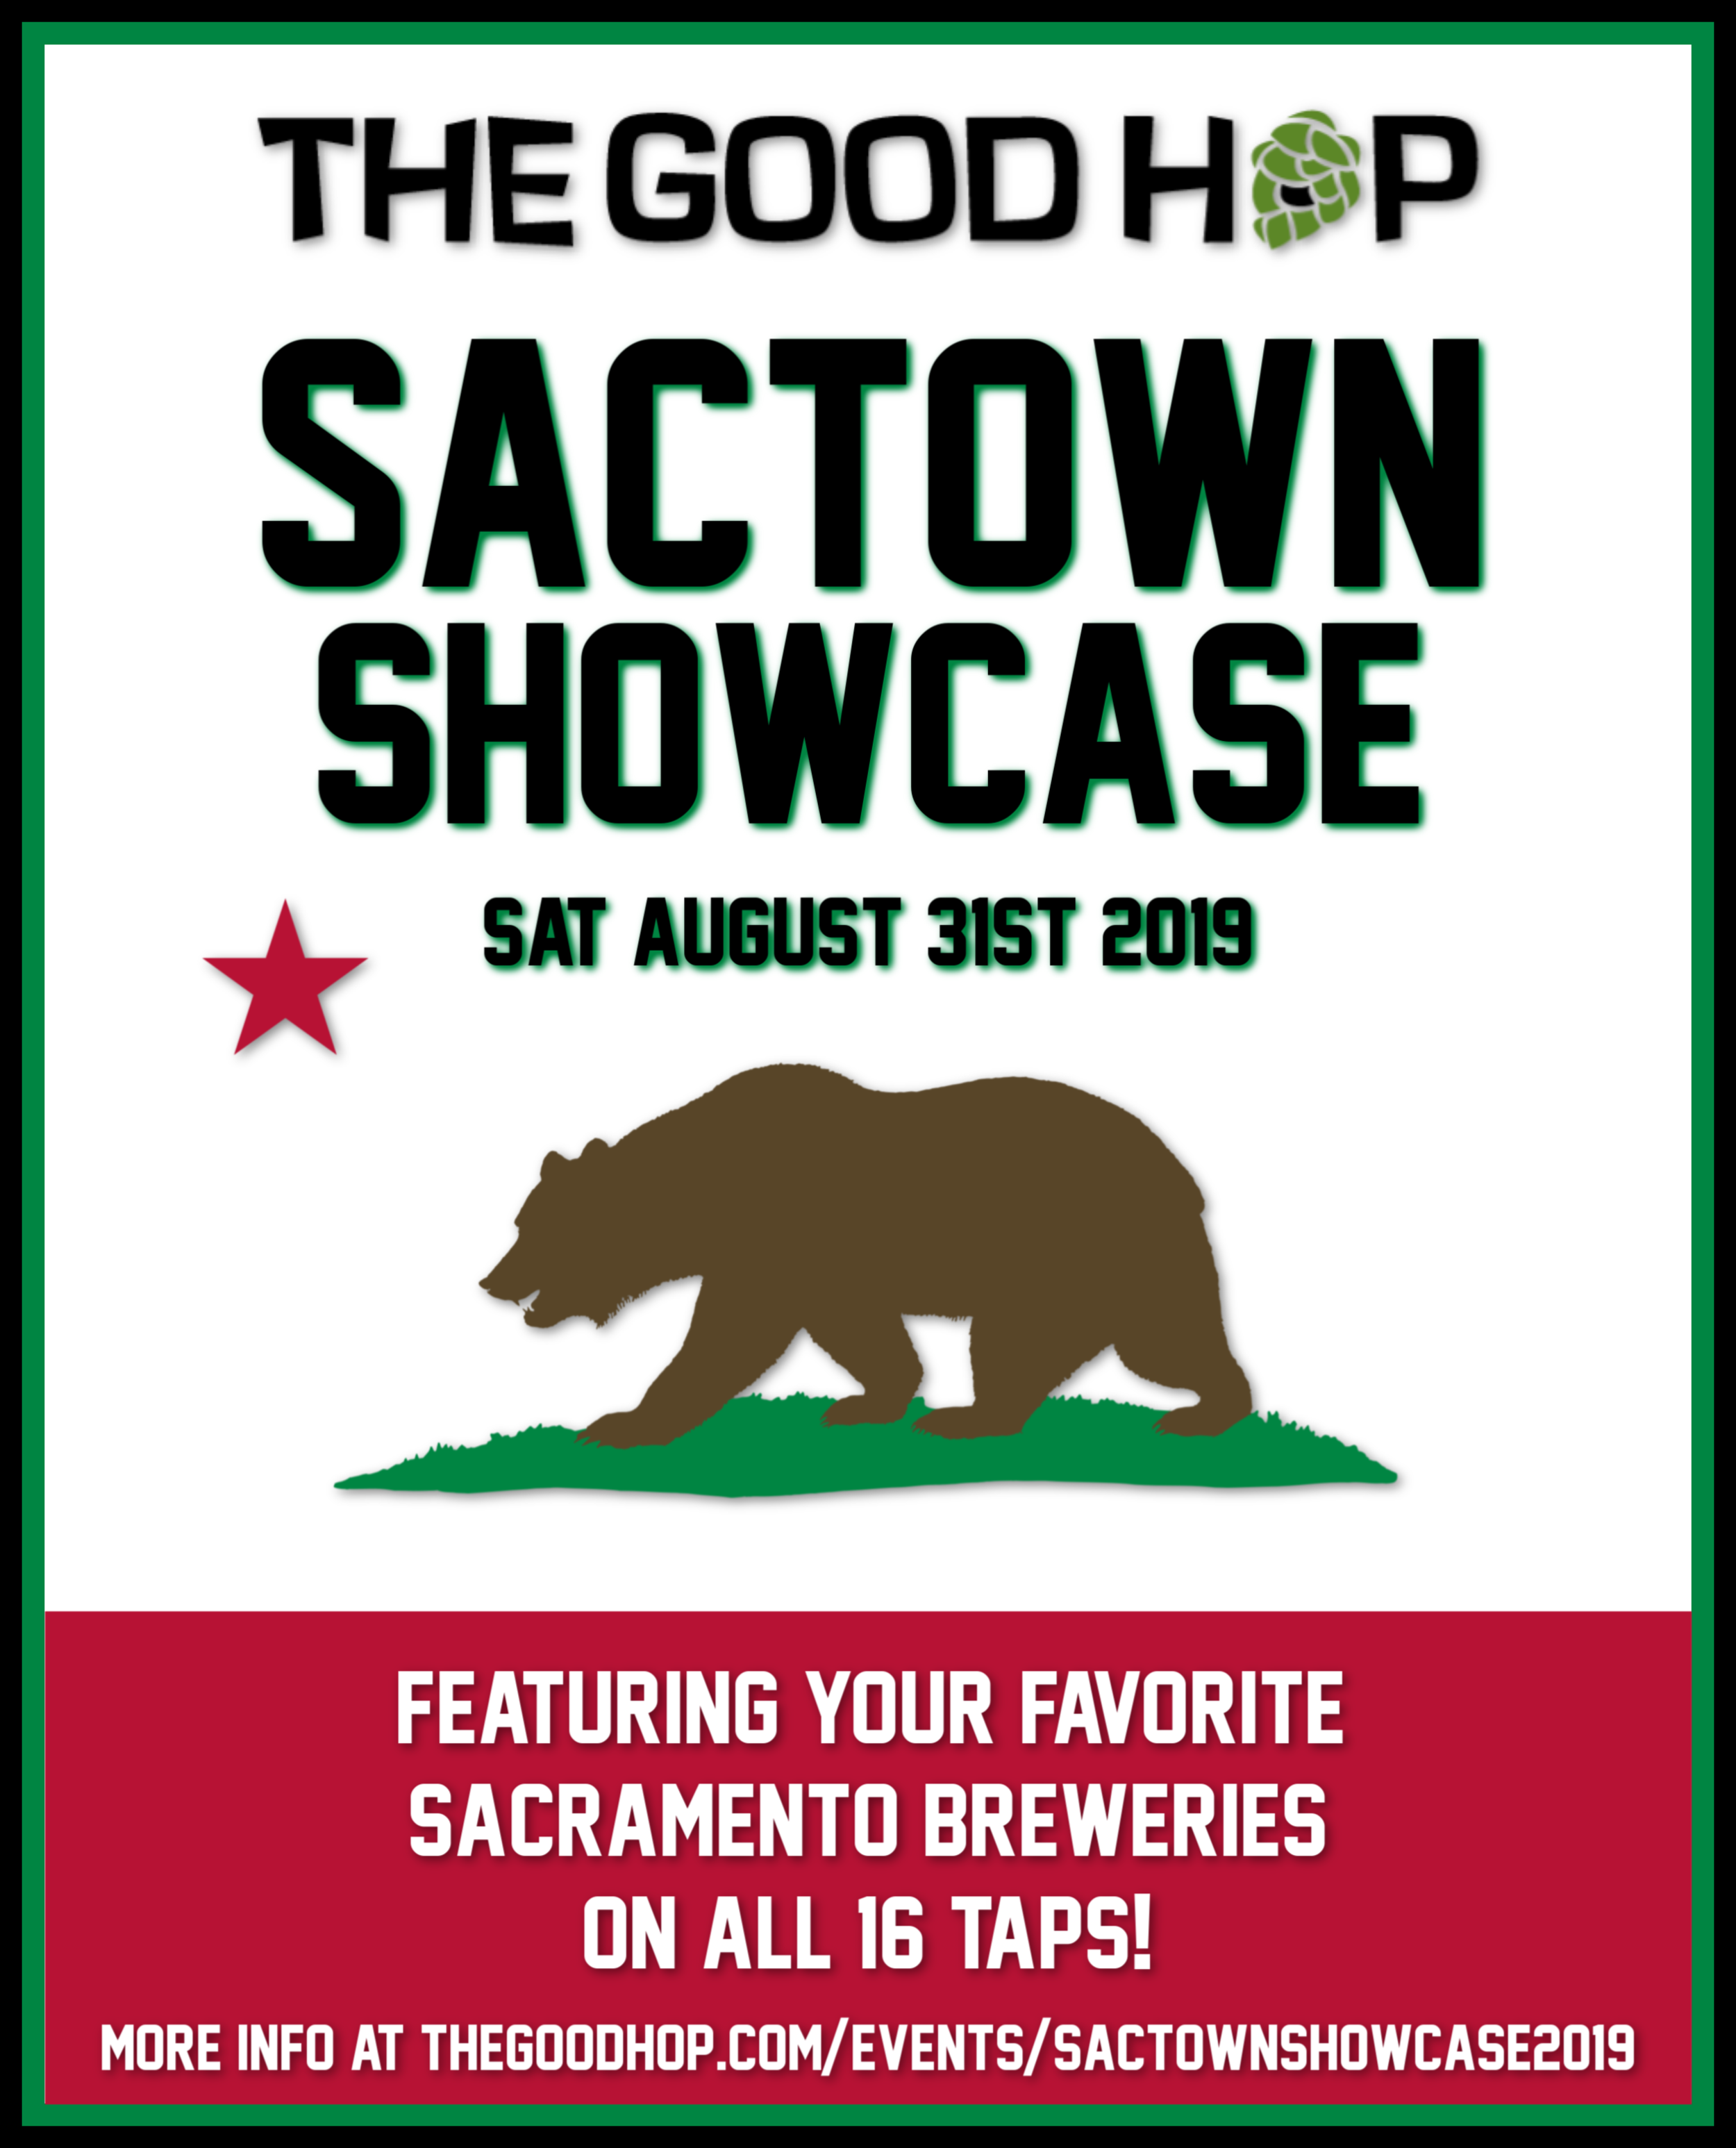 SacTown Showcase Basic Flyer.png